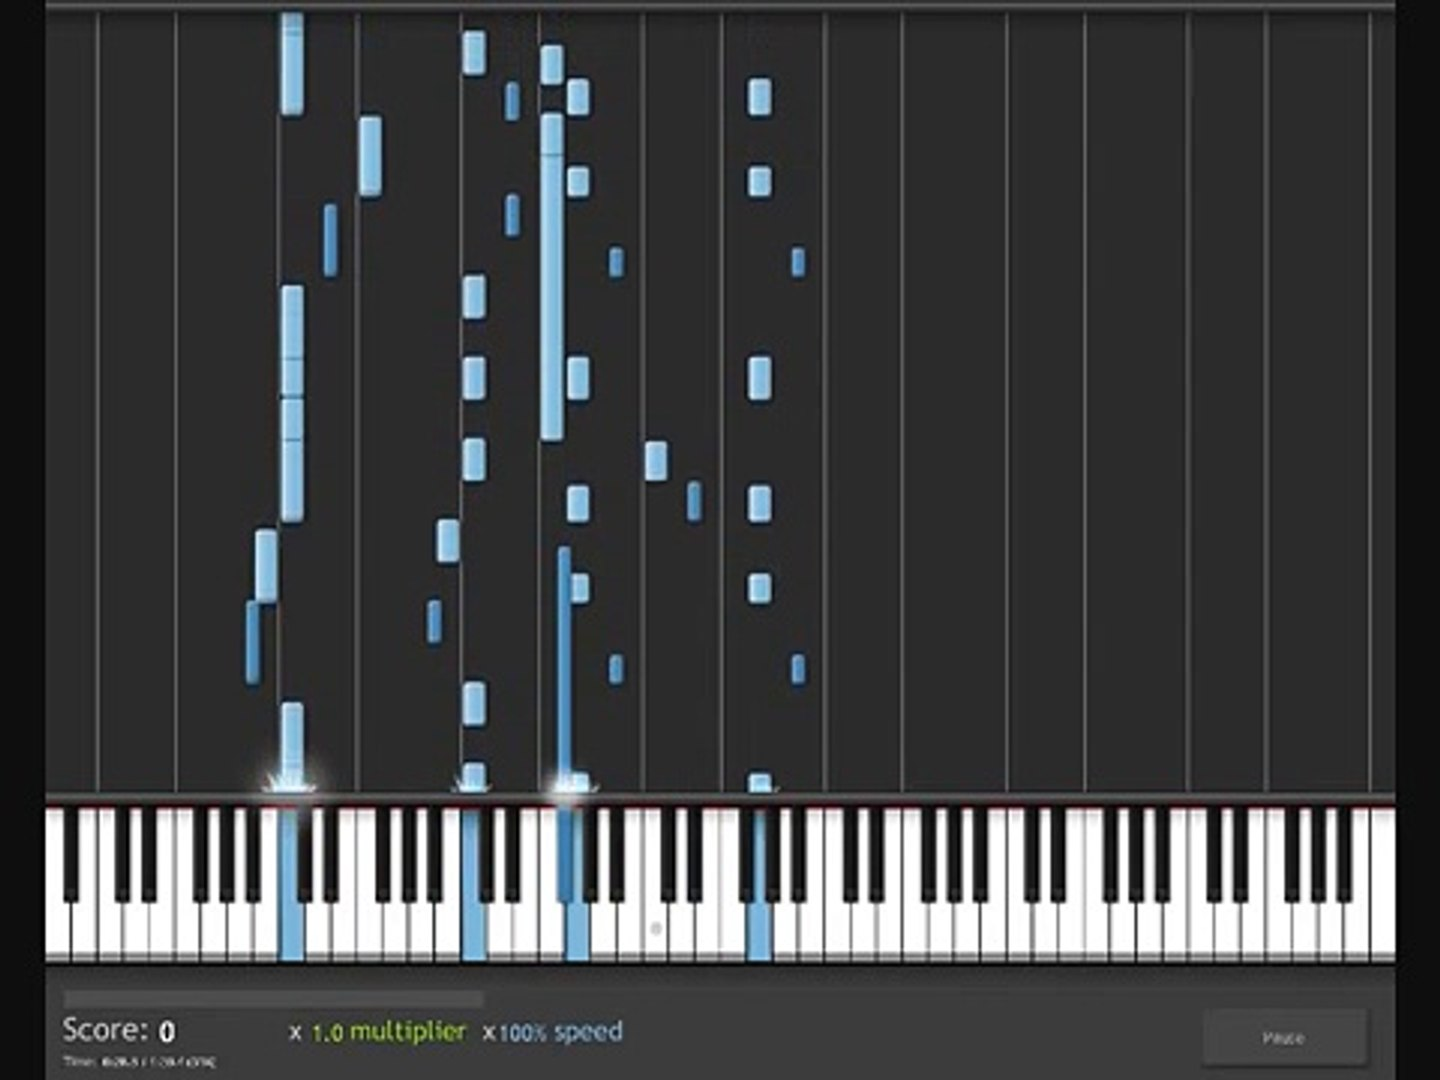 How To Play Mission Impossible Theme on piano/keyboard